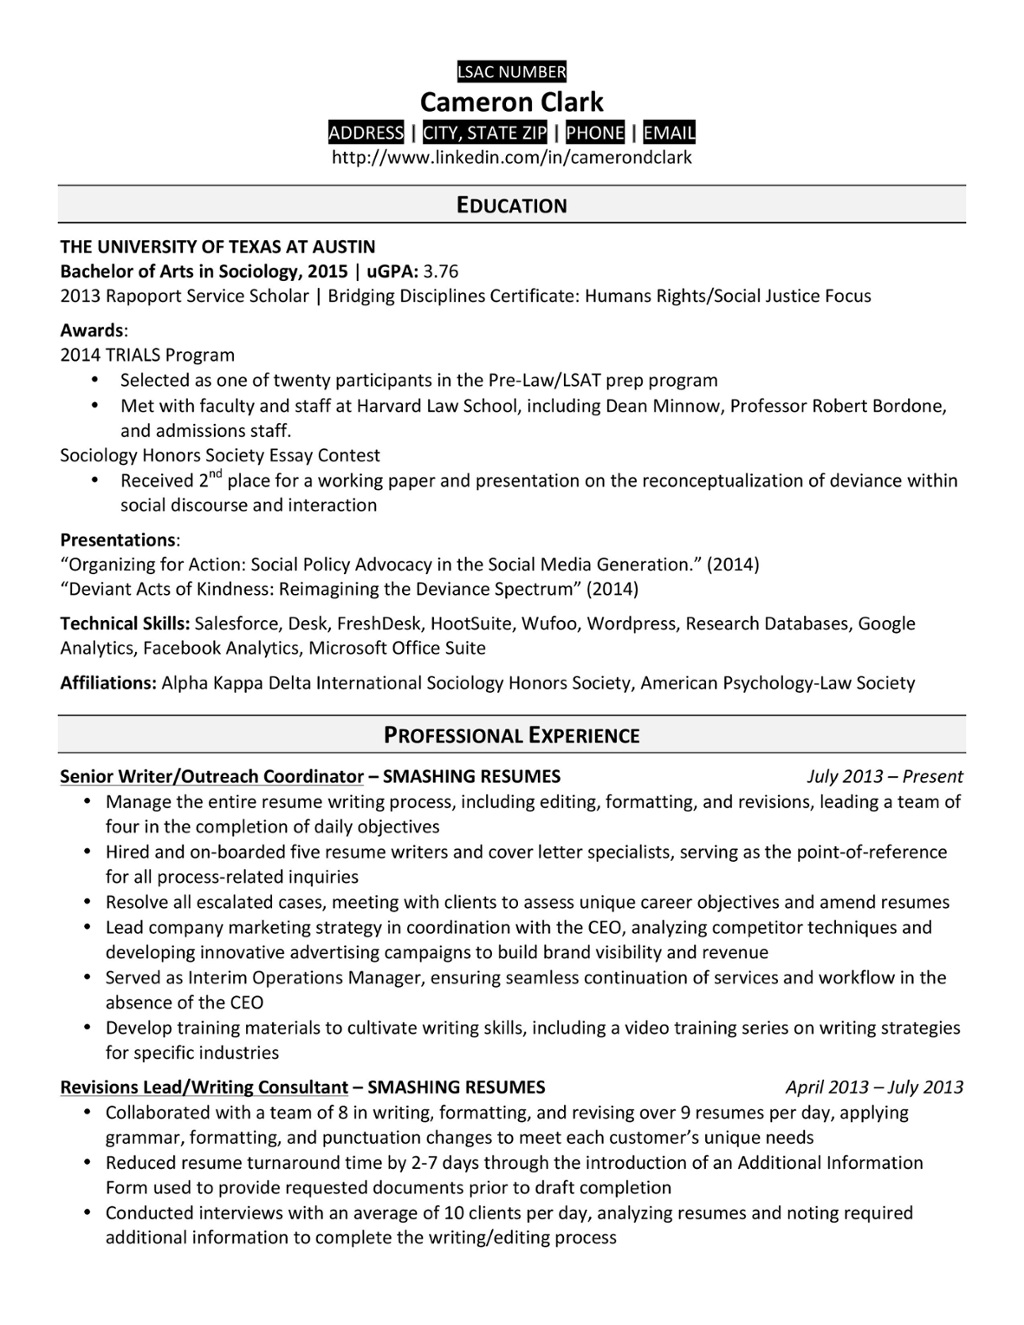 a law school resume that made the cut top law schools us news. Resume Example. Resume CV Cover Letter